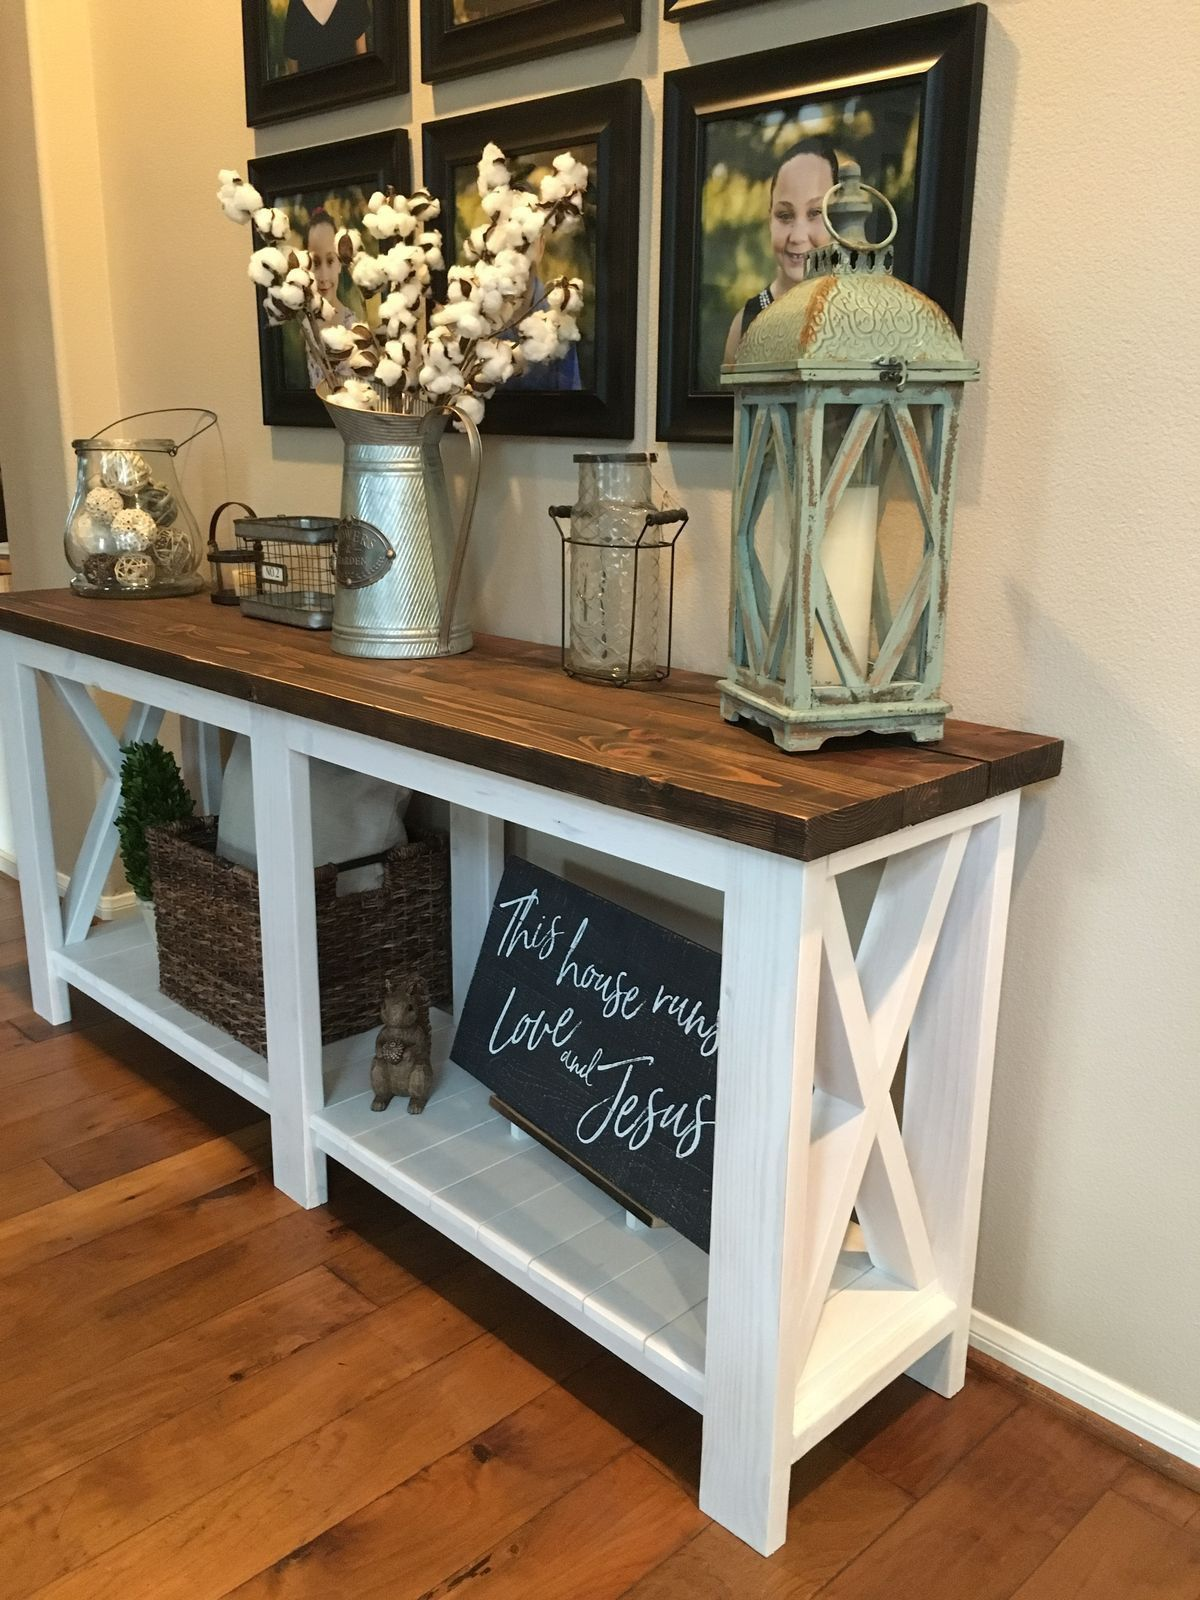 Pin By Kathy Swanson On Jaime Entrance Table Decor Entry Table Decor Entryway Table Decor